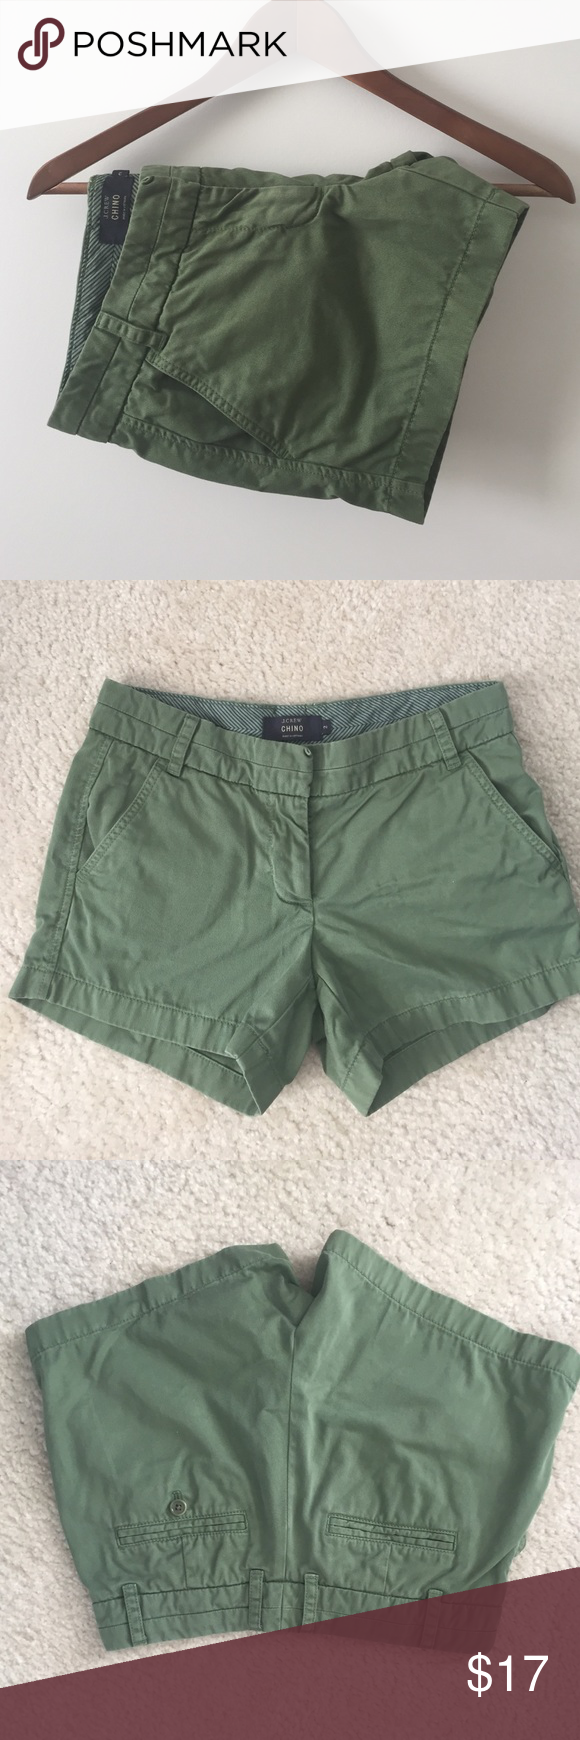 """J. Crew 4"""" chino shorts Bummed I have to re-posh these, but decided I need a longer inseam. Shorts are in excellent condition. True green. Size 2. J. Crew Shorts"""